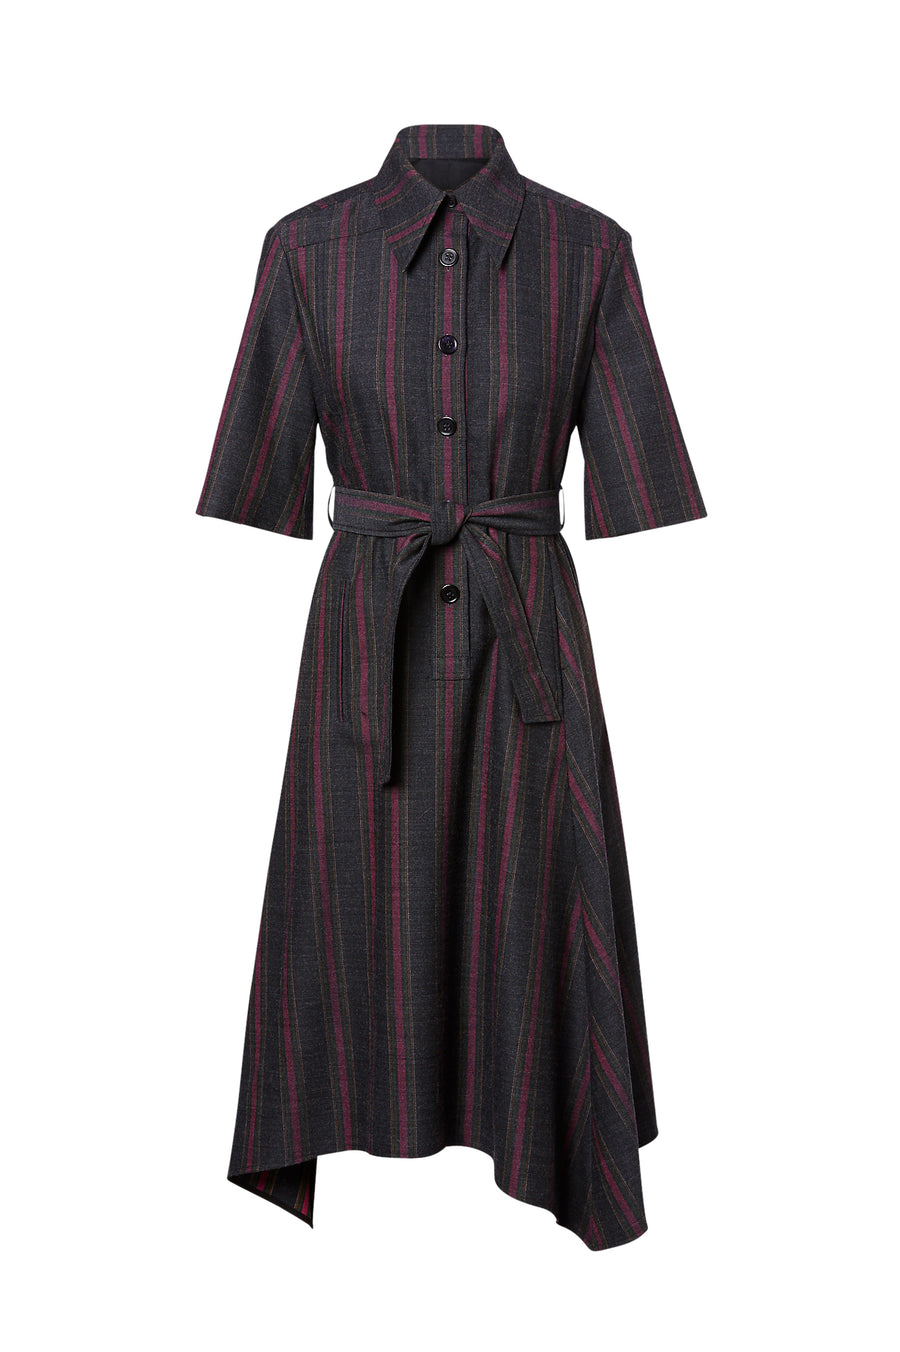 Tailored Stripe Dress, mid sleeves, button fastenings on front, pointed collar, belt (included), mid length, asymmetric hem, color charcoal